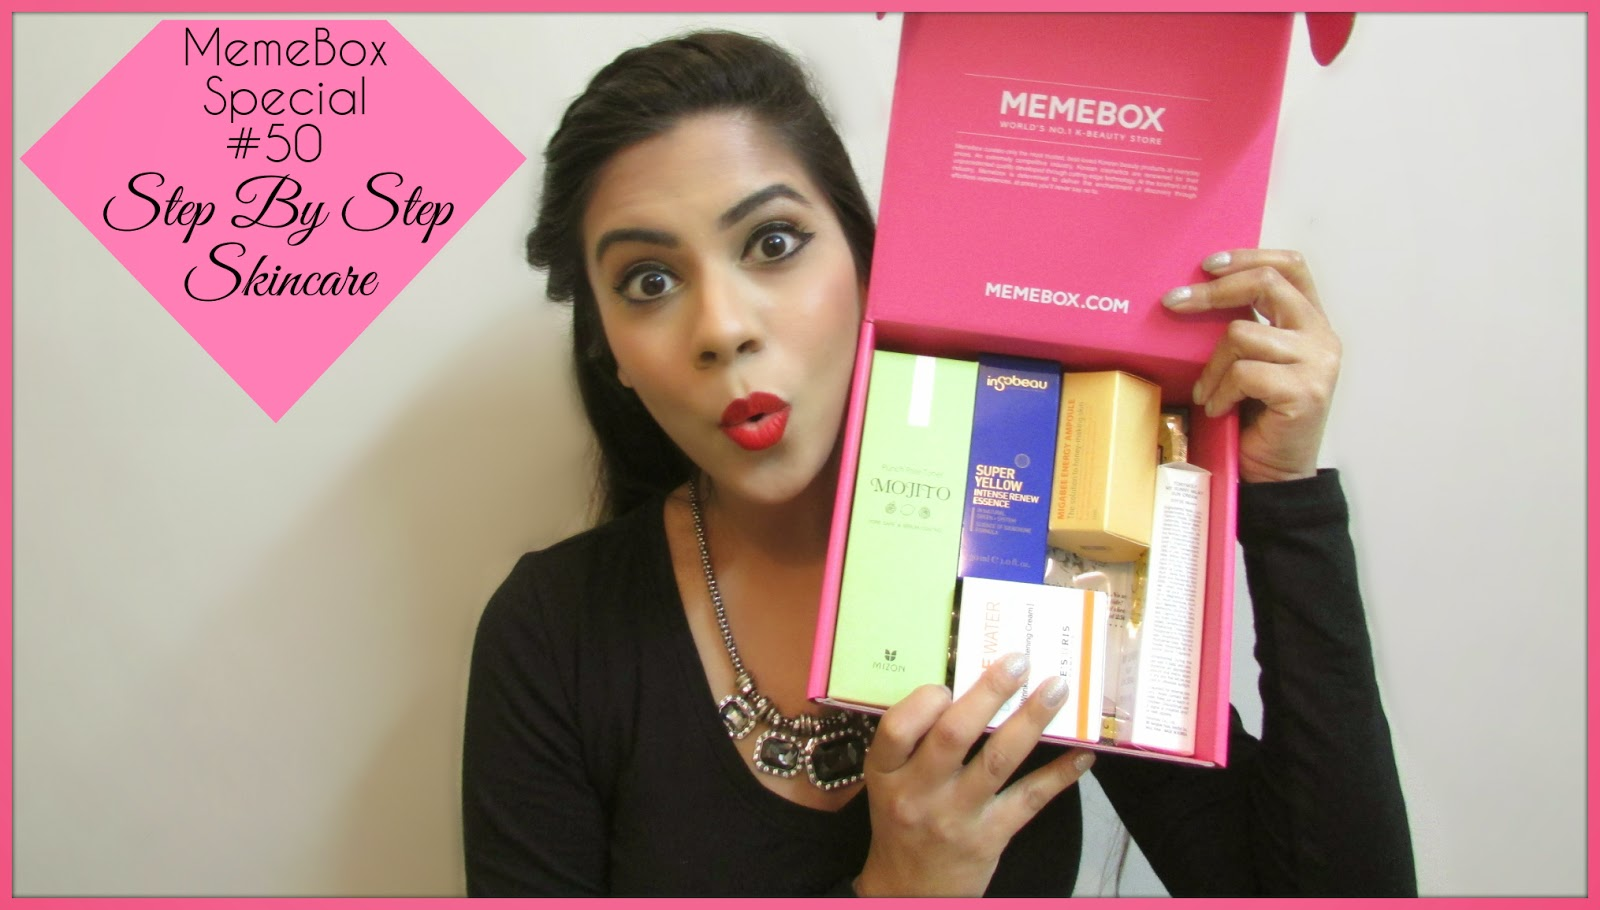 memebox-special-steop-by-step-skincare